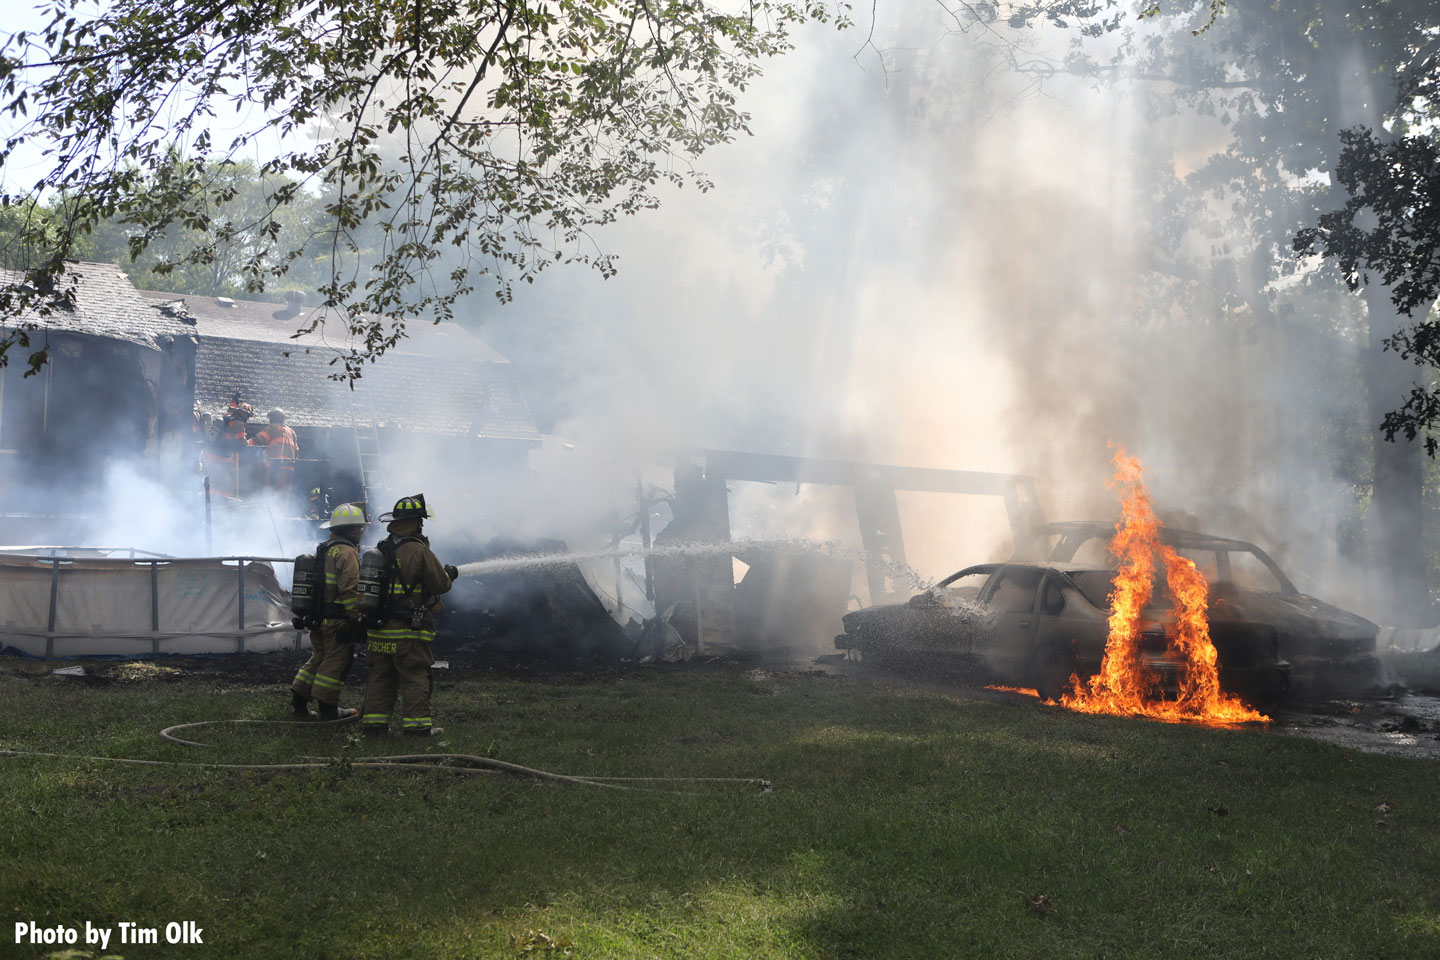 Firefighters confront flames at the scene of the fire.